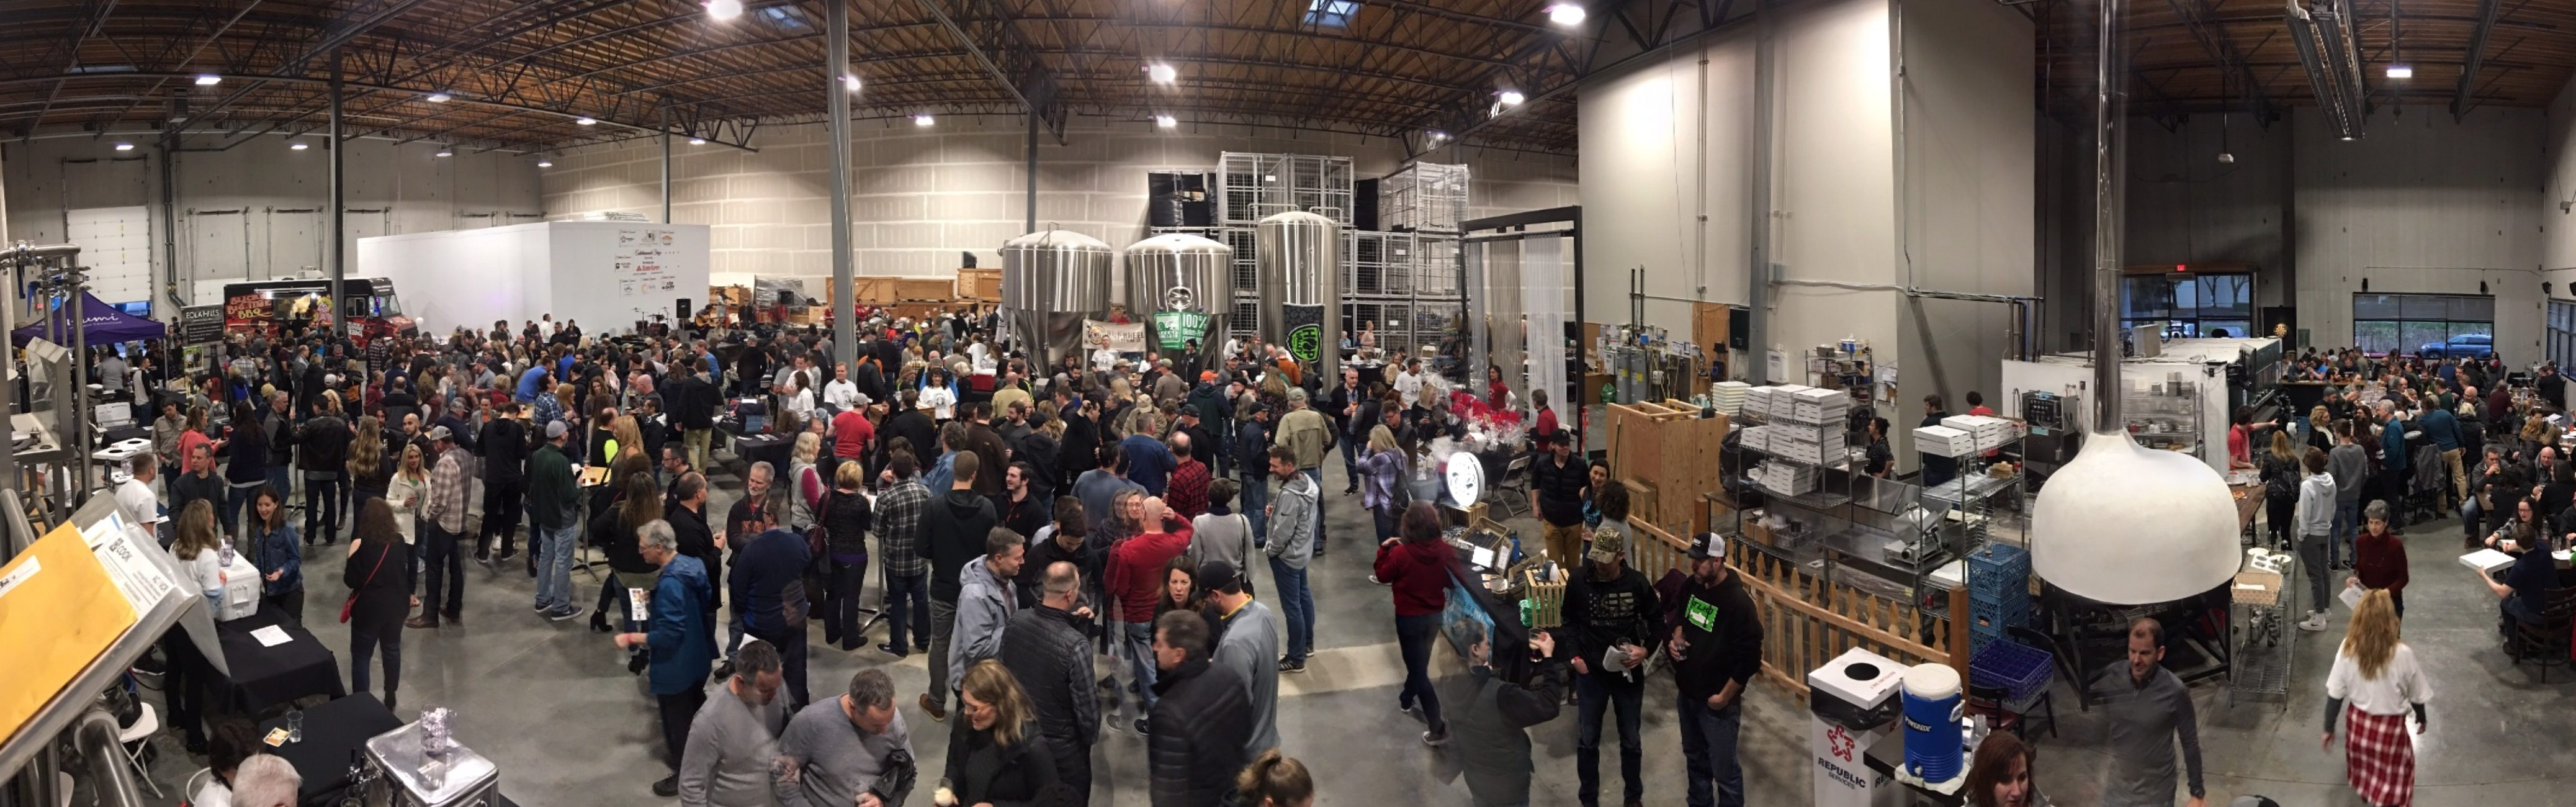 Tualatin Winter BrewFest panorama photo from 2018.